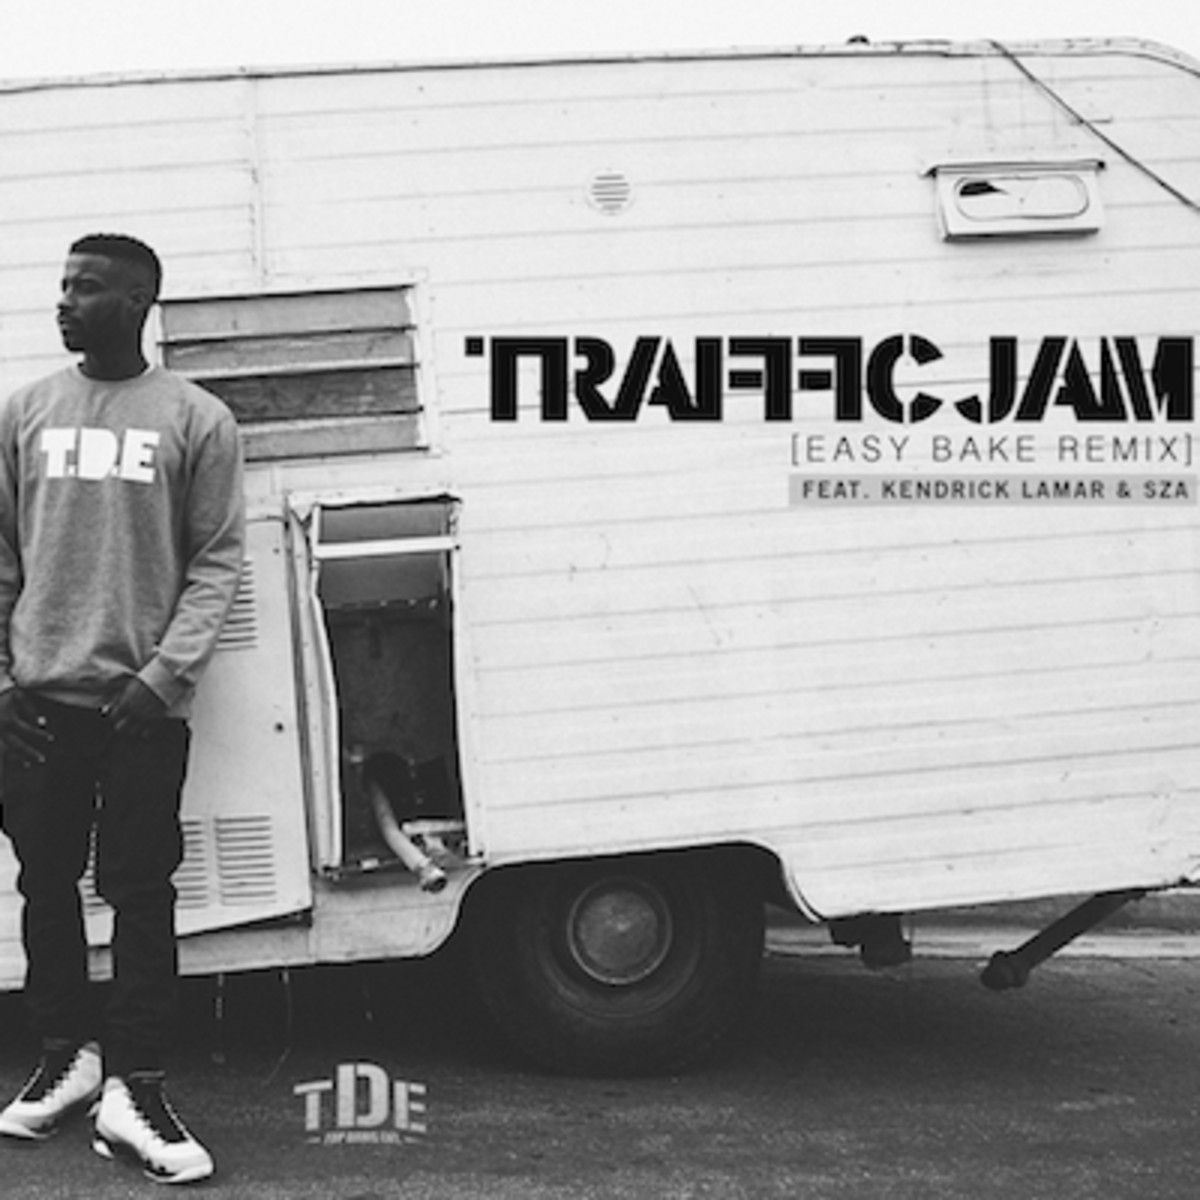 jay-rock-traffic-jam.jpg